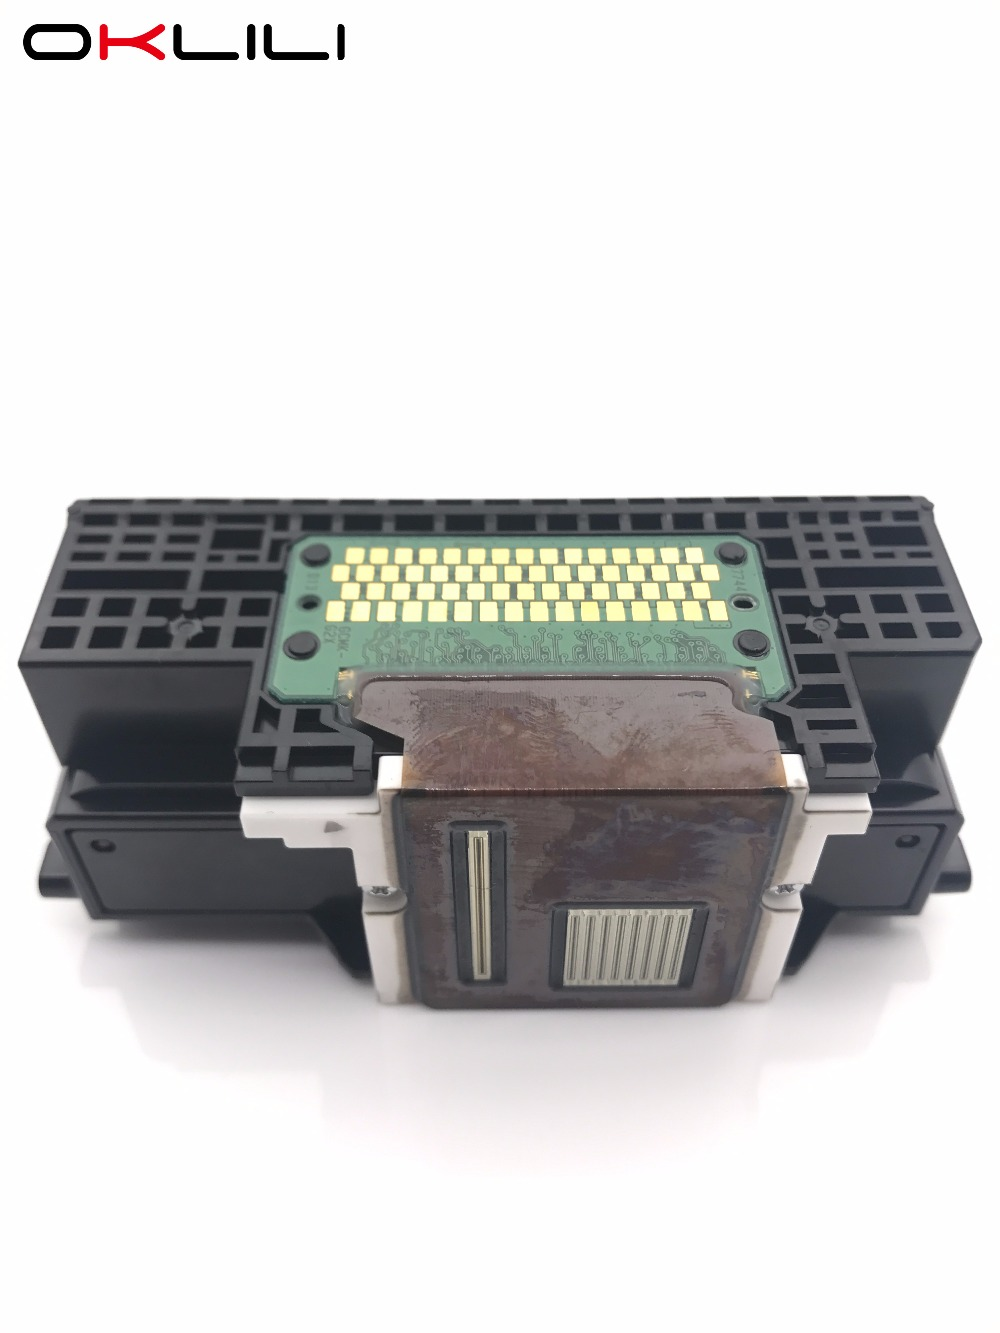 OKLILI ORIGINAL QY6-0074 QY6-0074-000 Printhead Print Head Printer Head for Canon PIXMA MP980 qy6 0069 qy6 0069 qy60069 qy6 0069 000 printhead print head printer head remanufactured for canon mini260 mini320